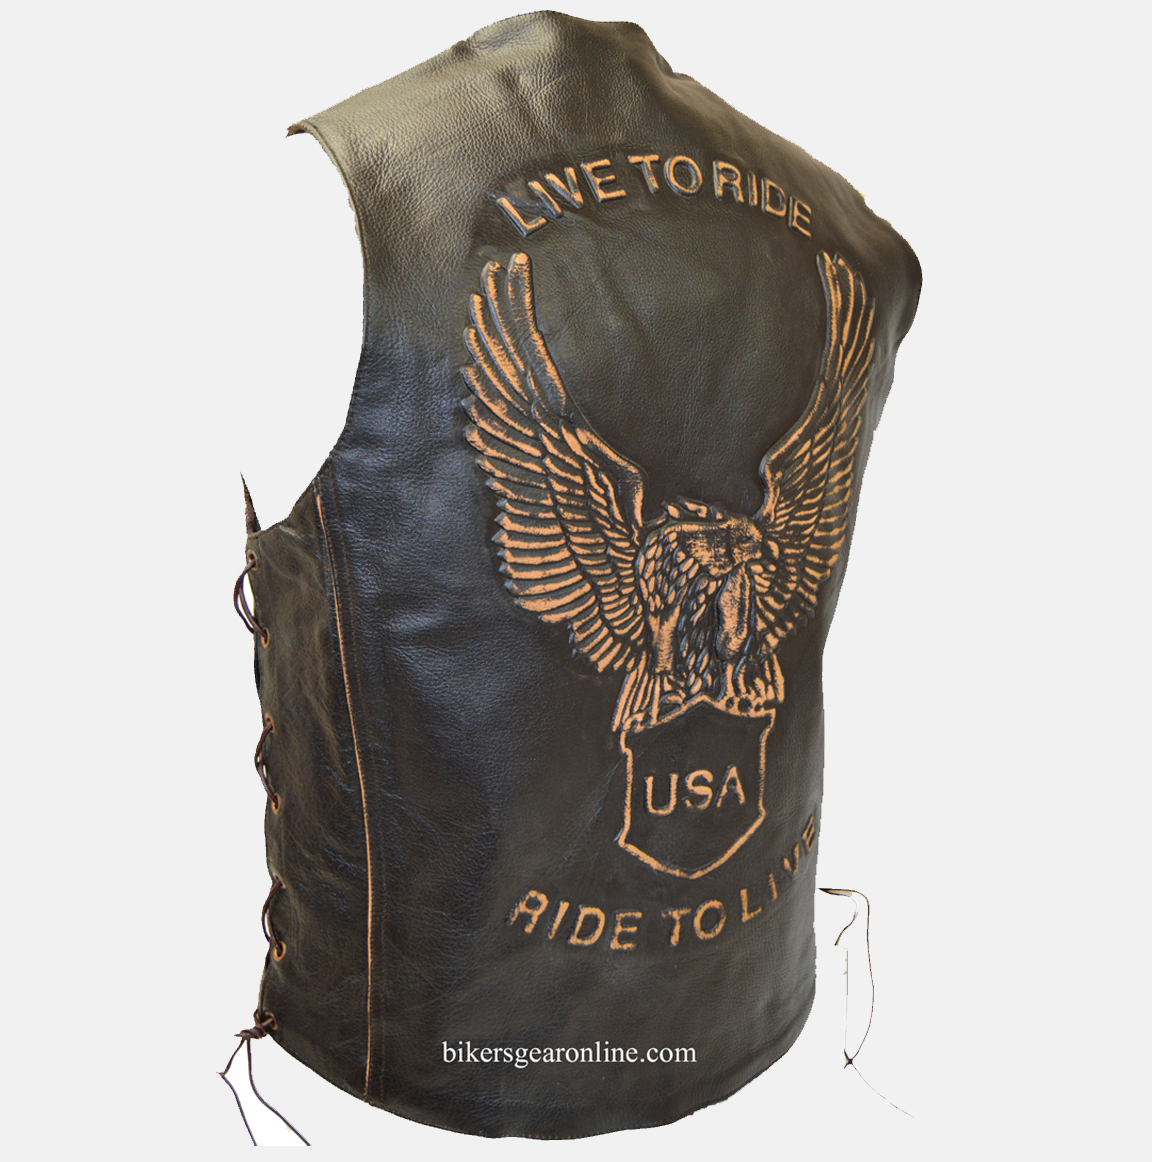 USA Live to Ride Leather Vest Motorcycle